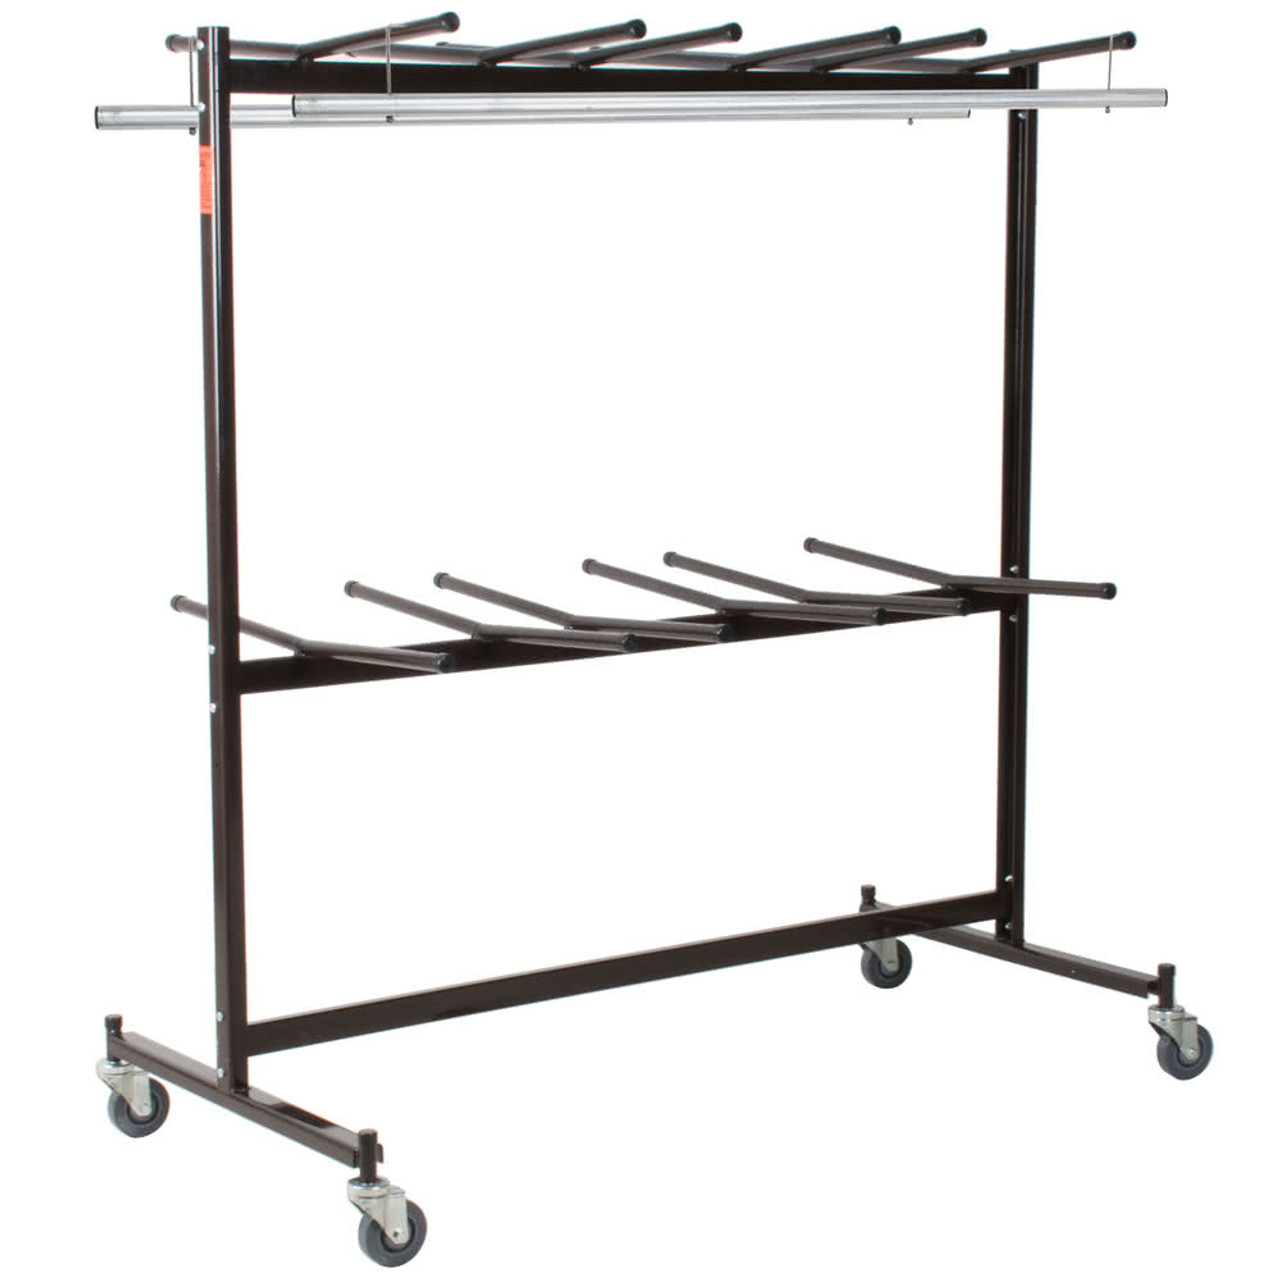 Chair Rack Hanging Storage And Transport Folding Chair Cart With Checkerette Bars And Coat Rack Conversion